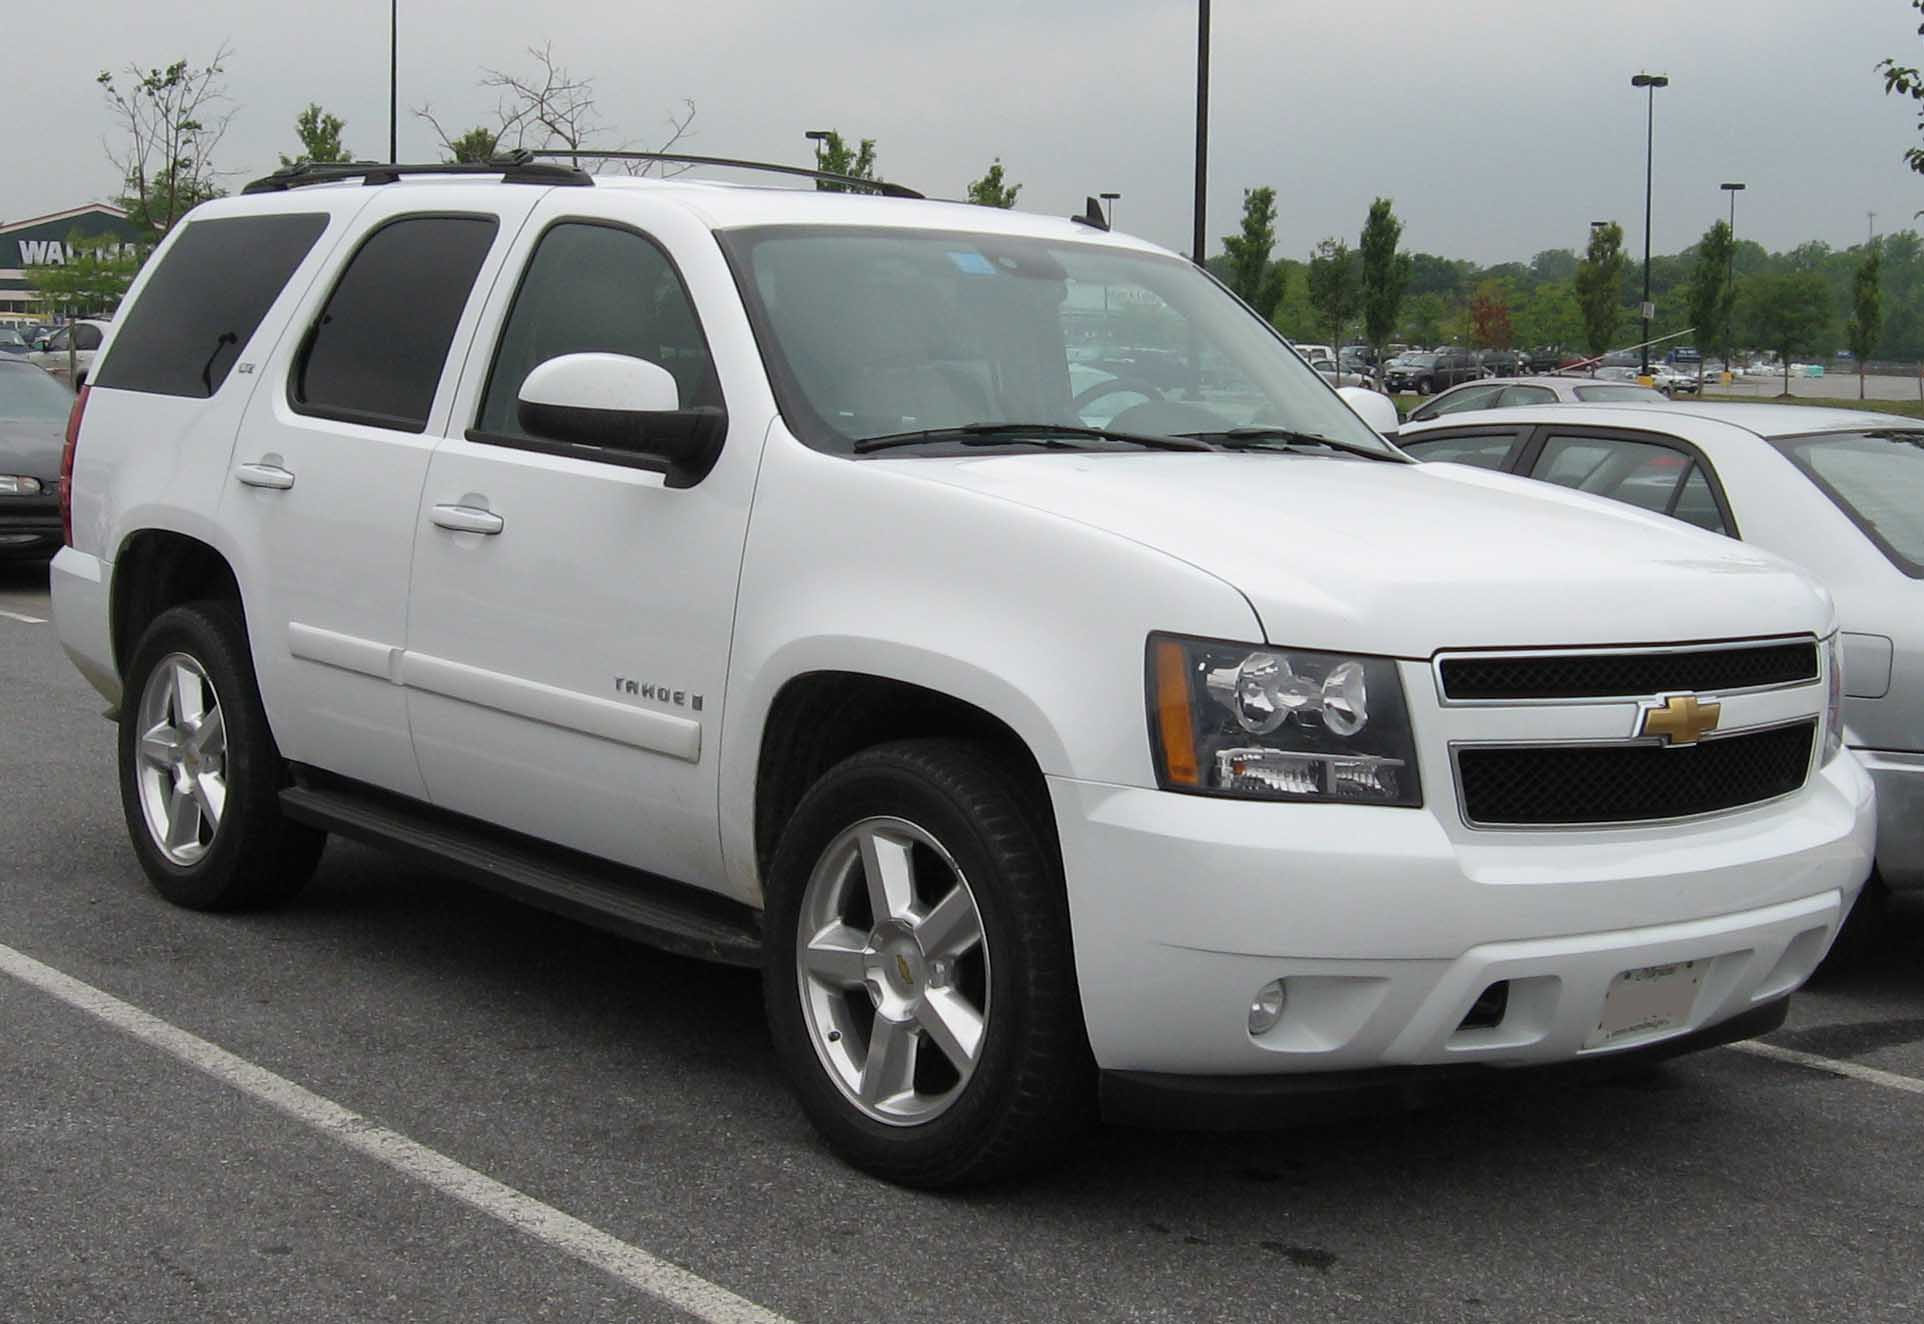 Pictures of chevrolet tahoe #2